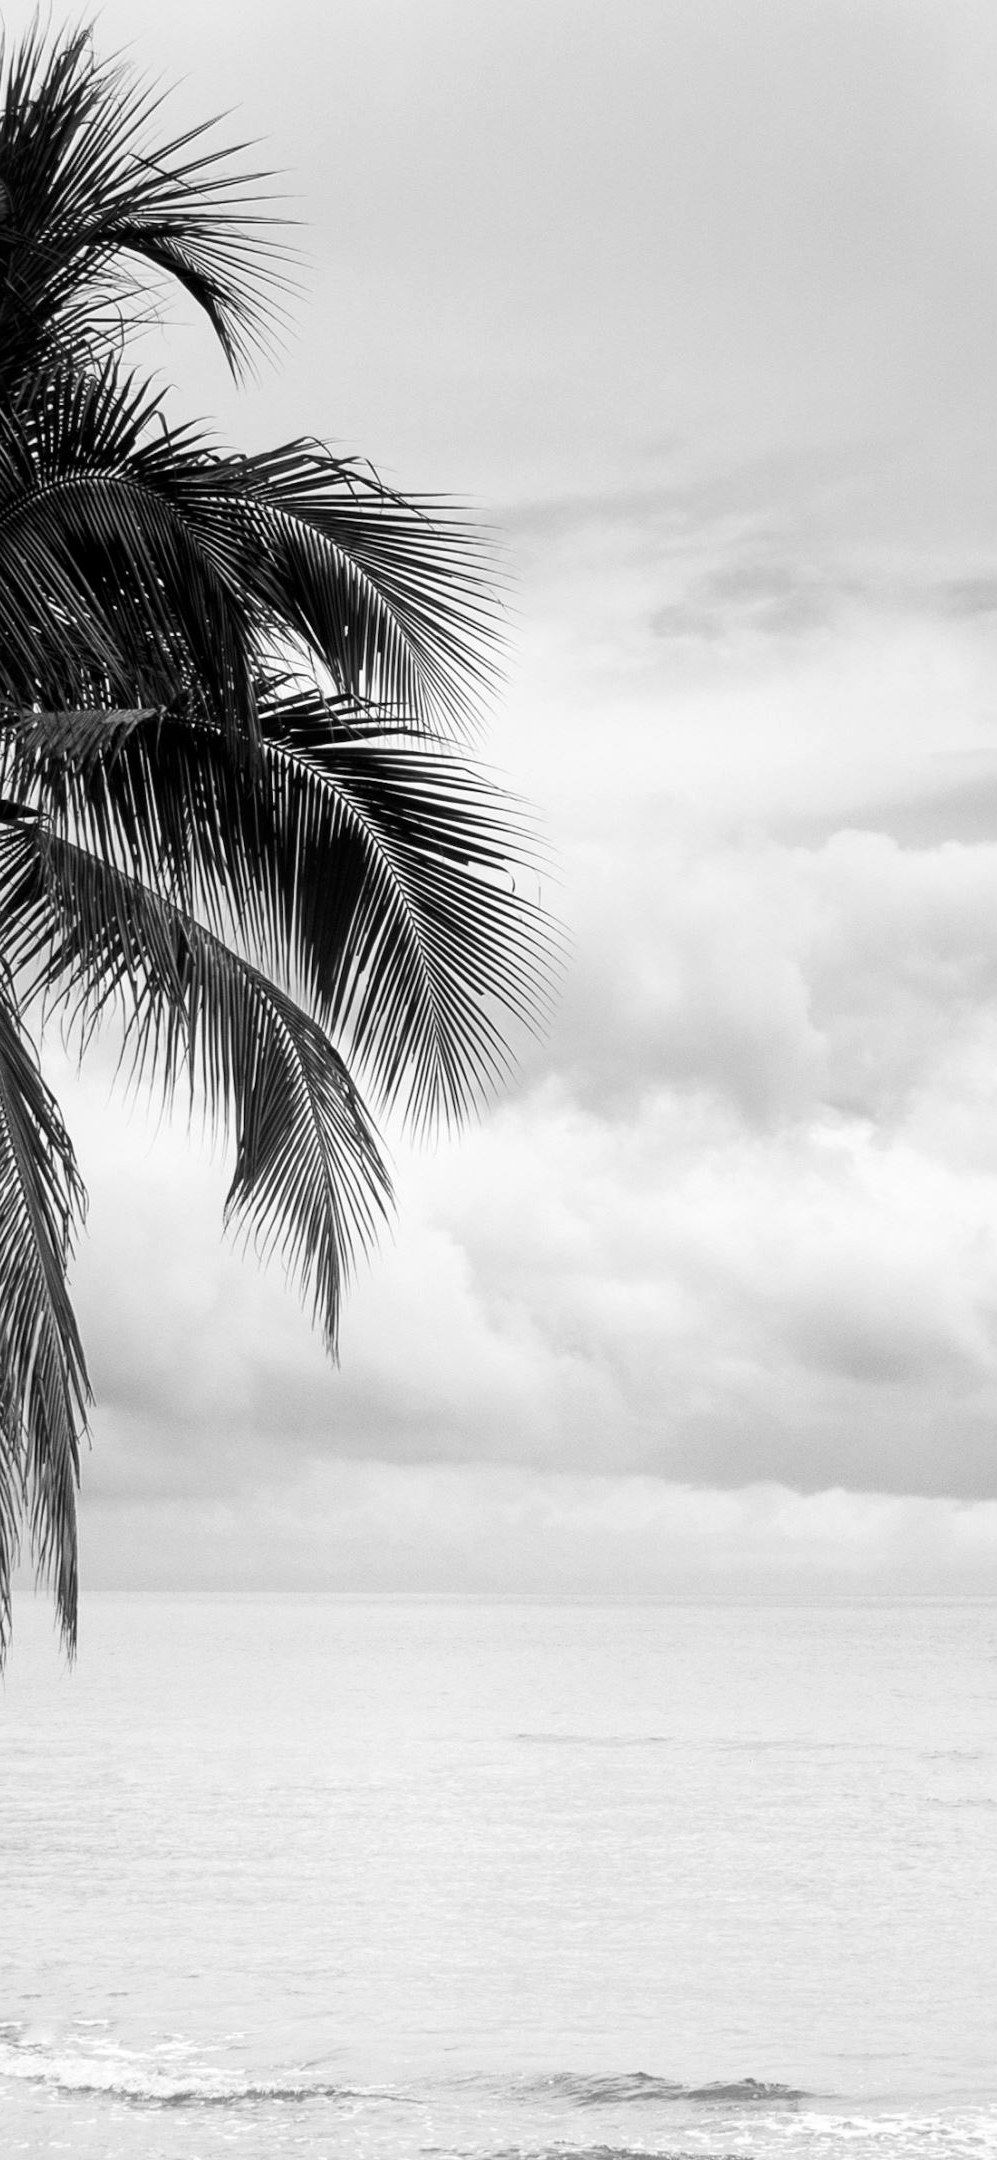 Iphone X Wallpaper Coconut Tree Black And White Wallpaper Hd Black And White Wallpaper Black And White Wallpaper Iphone White Wallpaper For Iphone